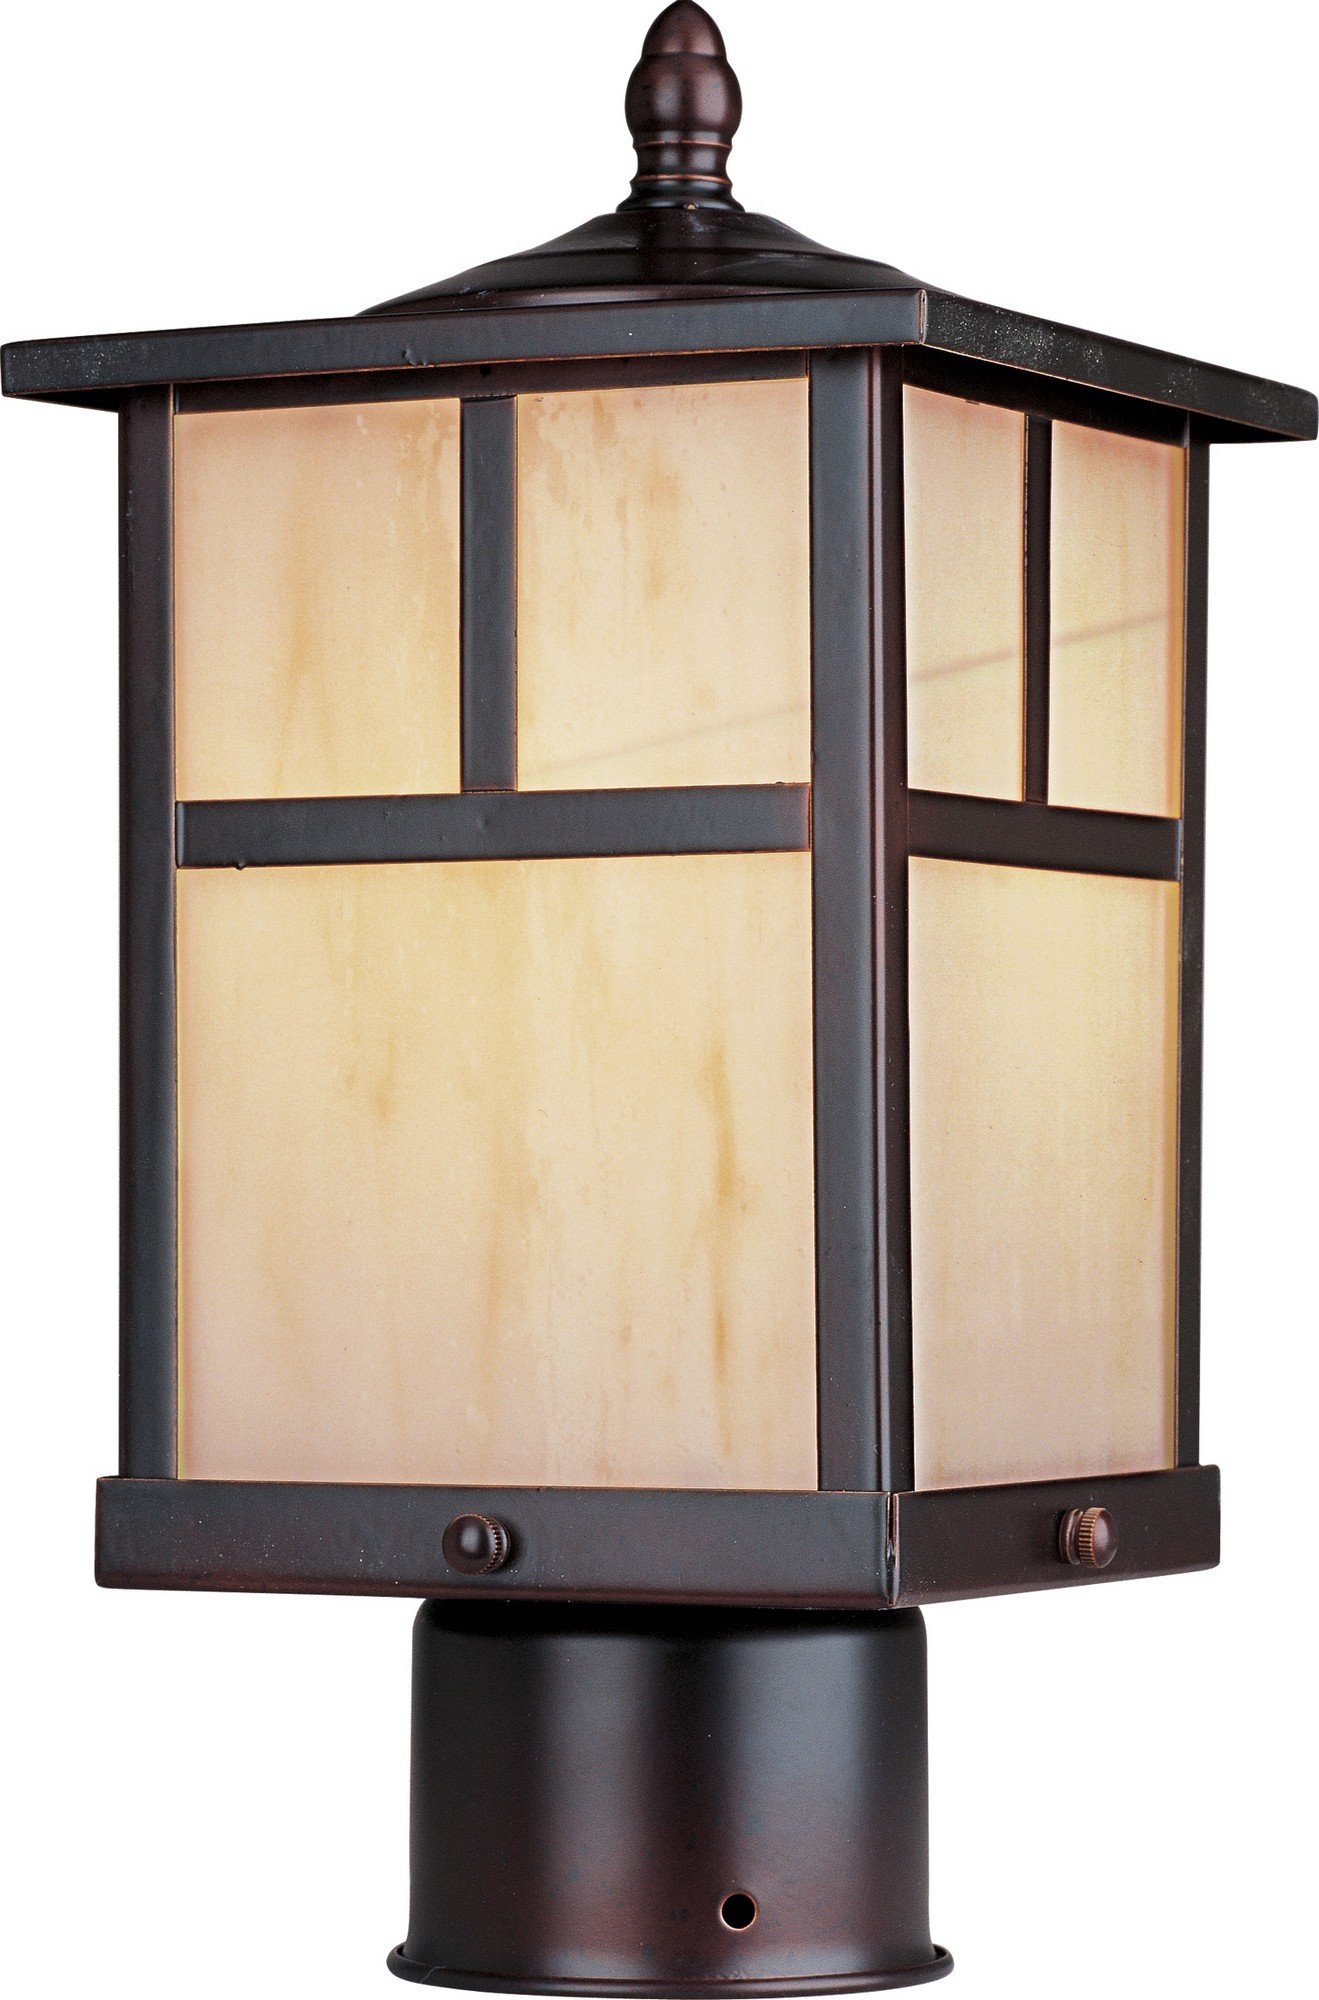 Maxim Lighting 4055HOBU Craftsman Post Mount Light – Outdoor Capable Mount Light with Burnished Finishing. Lighting Fixtures